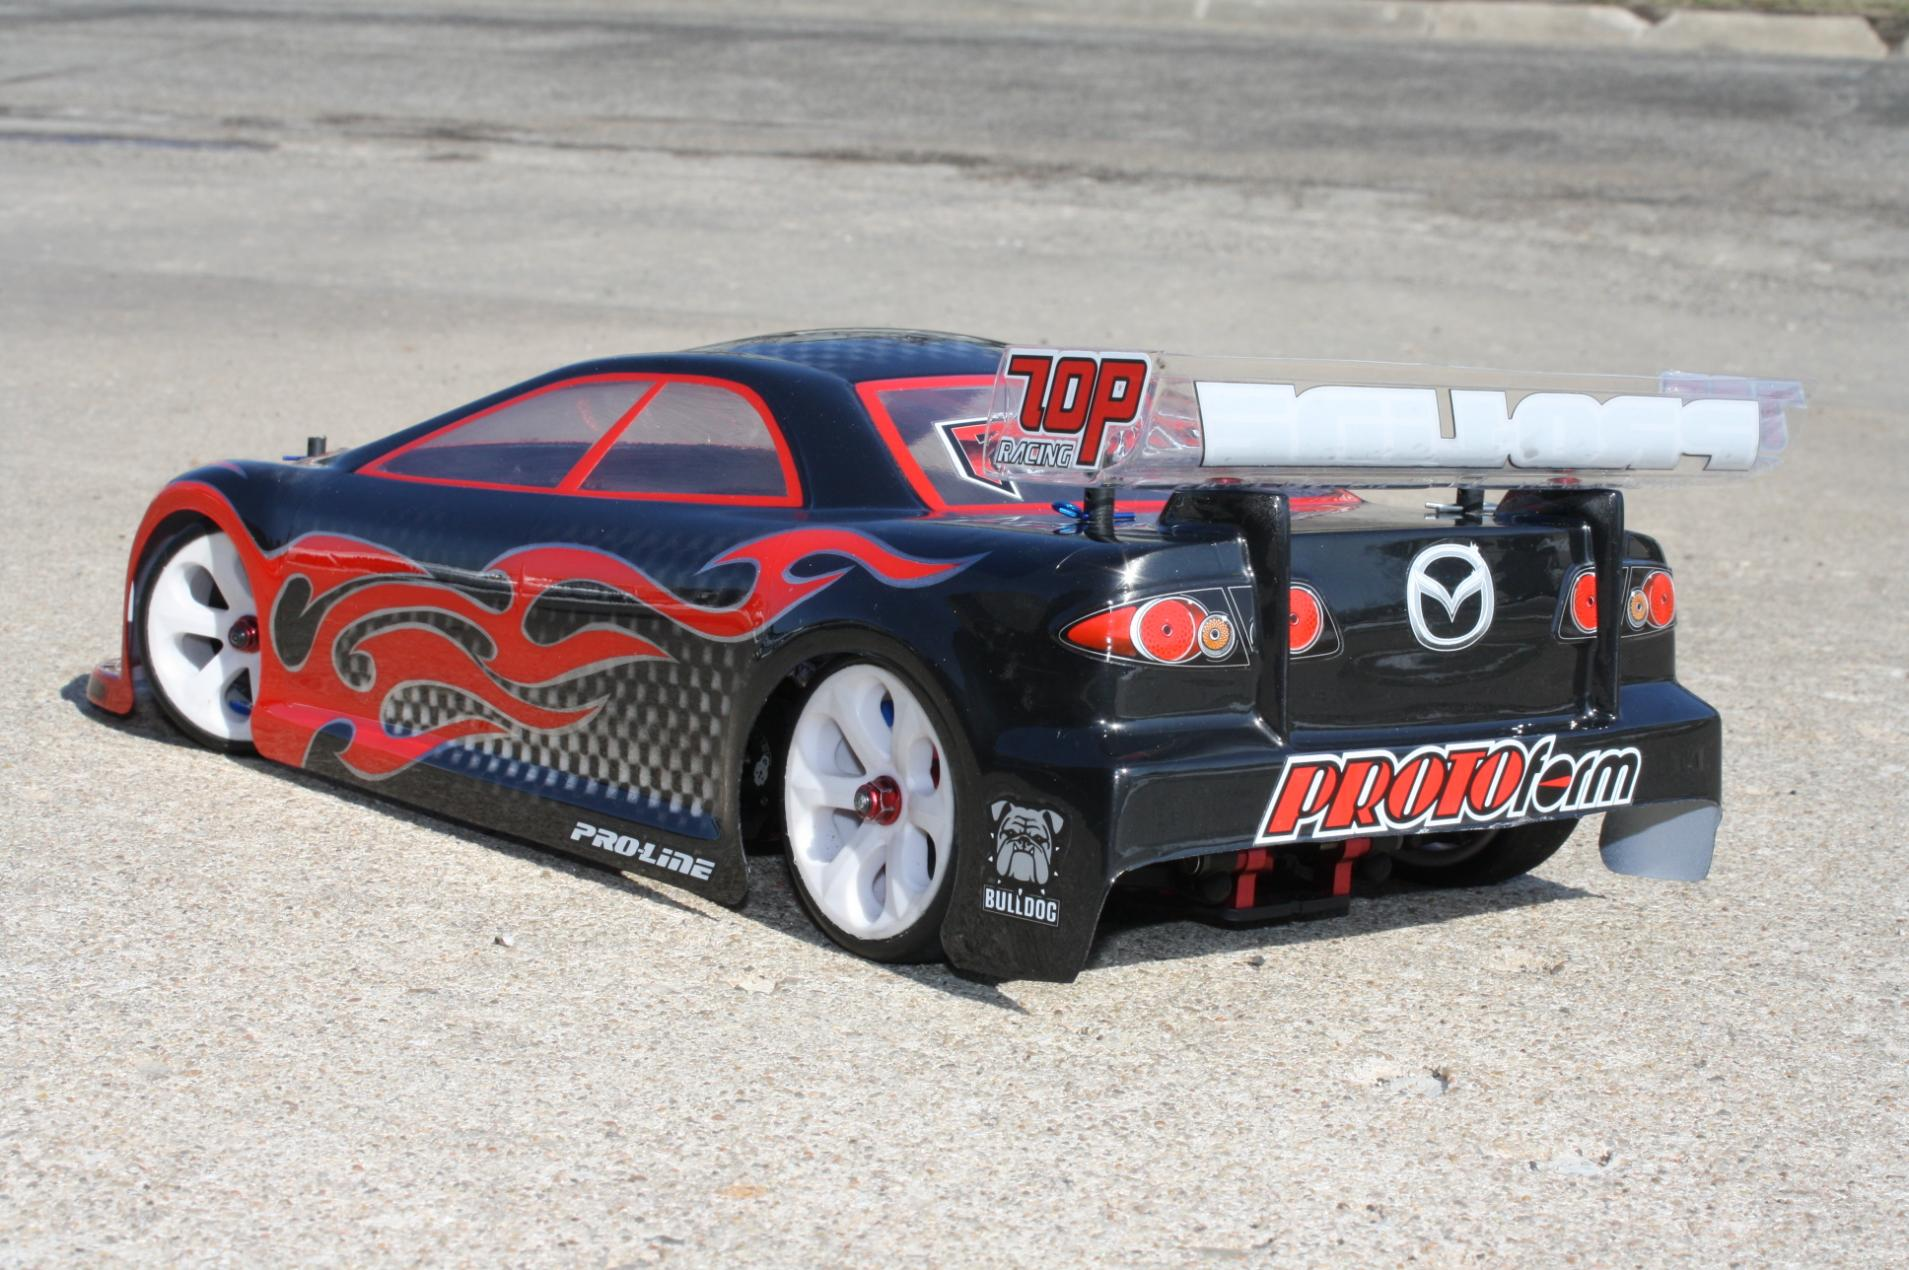 Topeka Onroad Racing Page 561 R C Tech Forums Ideas And Designs